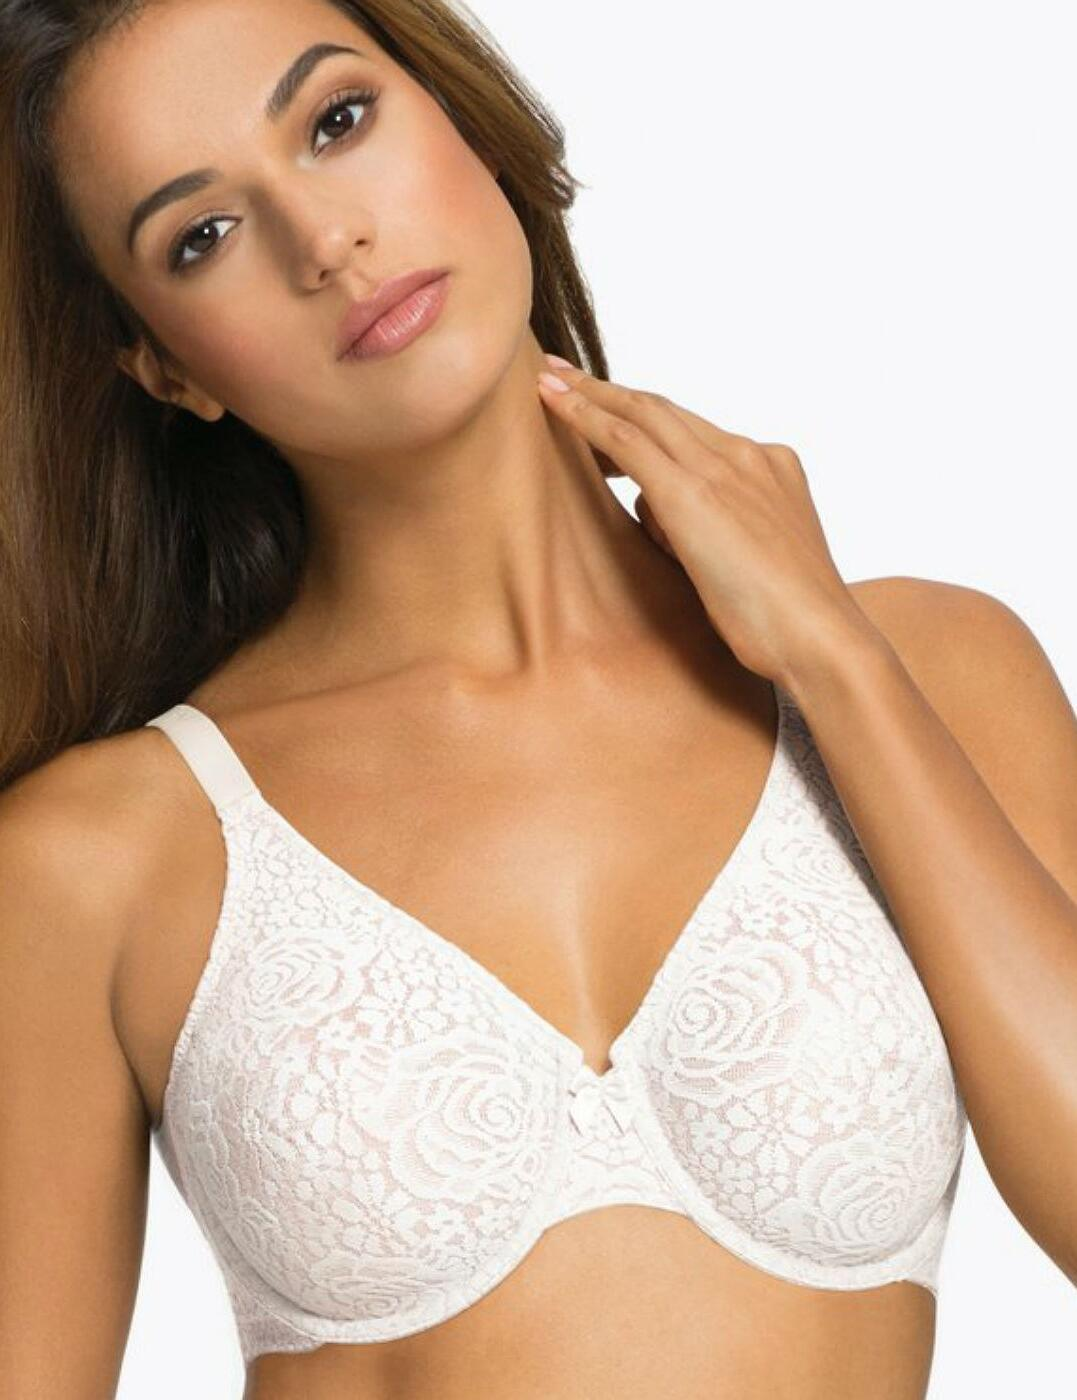 851205 Wacoal Halo Lace Moulded Bra - 851205 Ivory